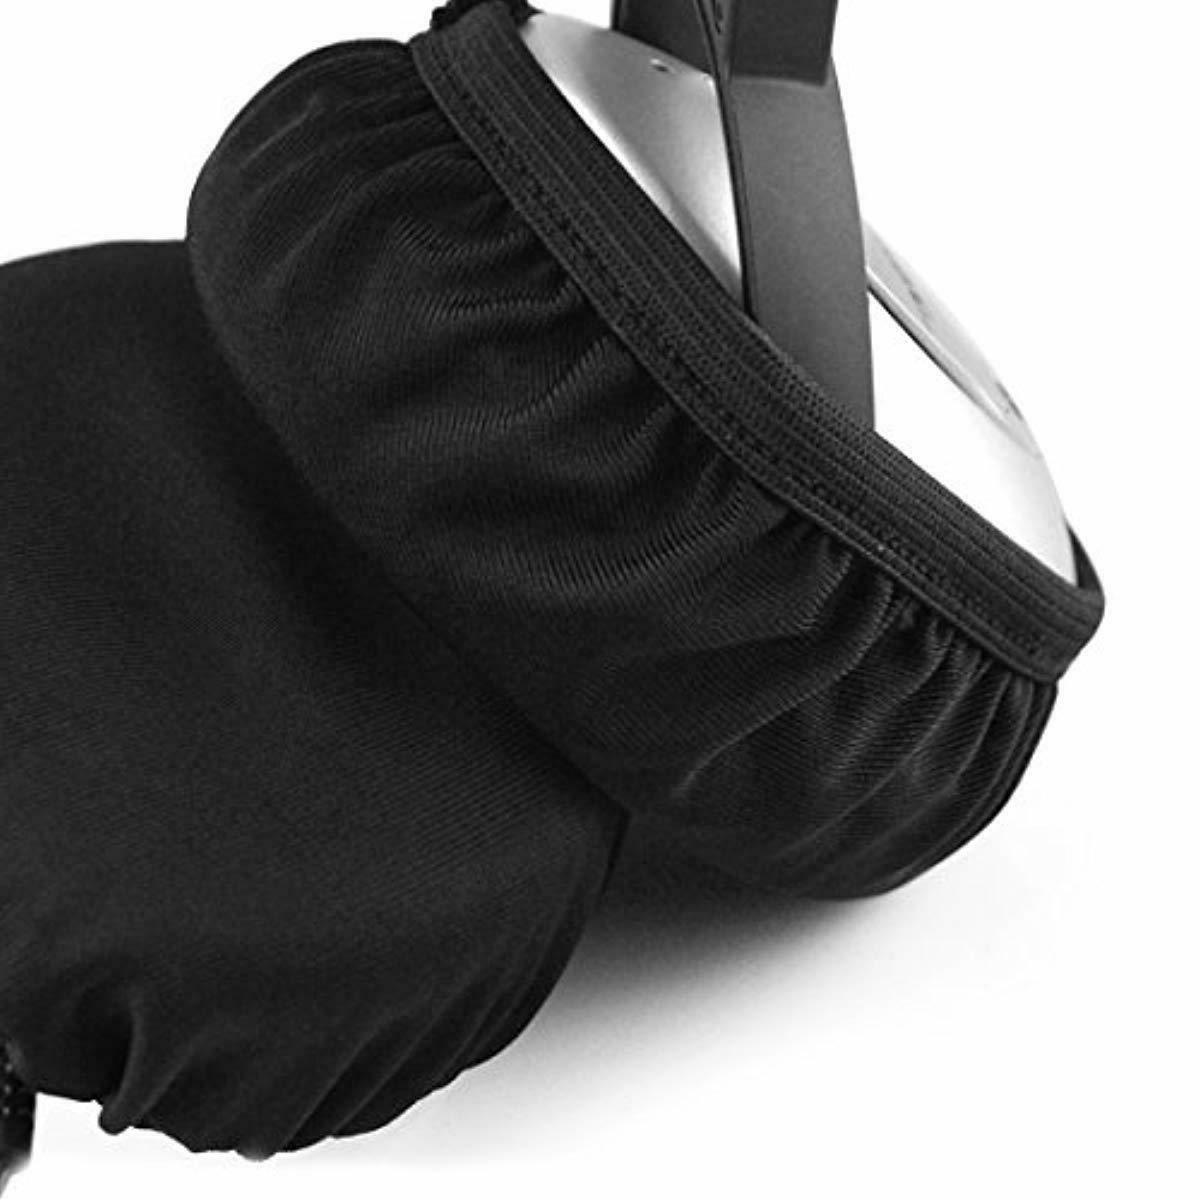 Geekria Flex Fabric Earpad Covers/Stretchable and Washable Sanitary